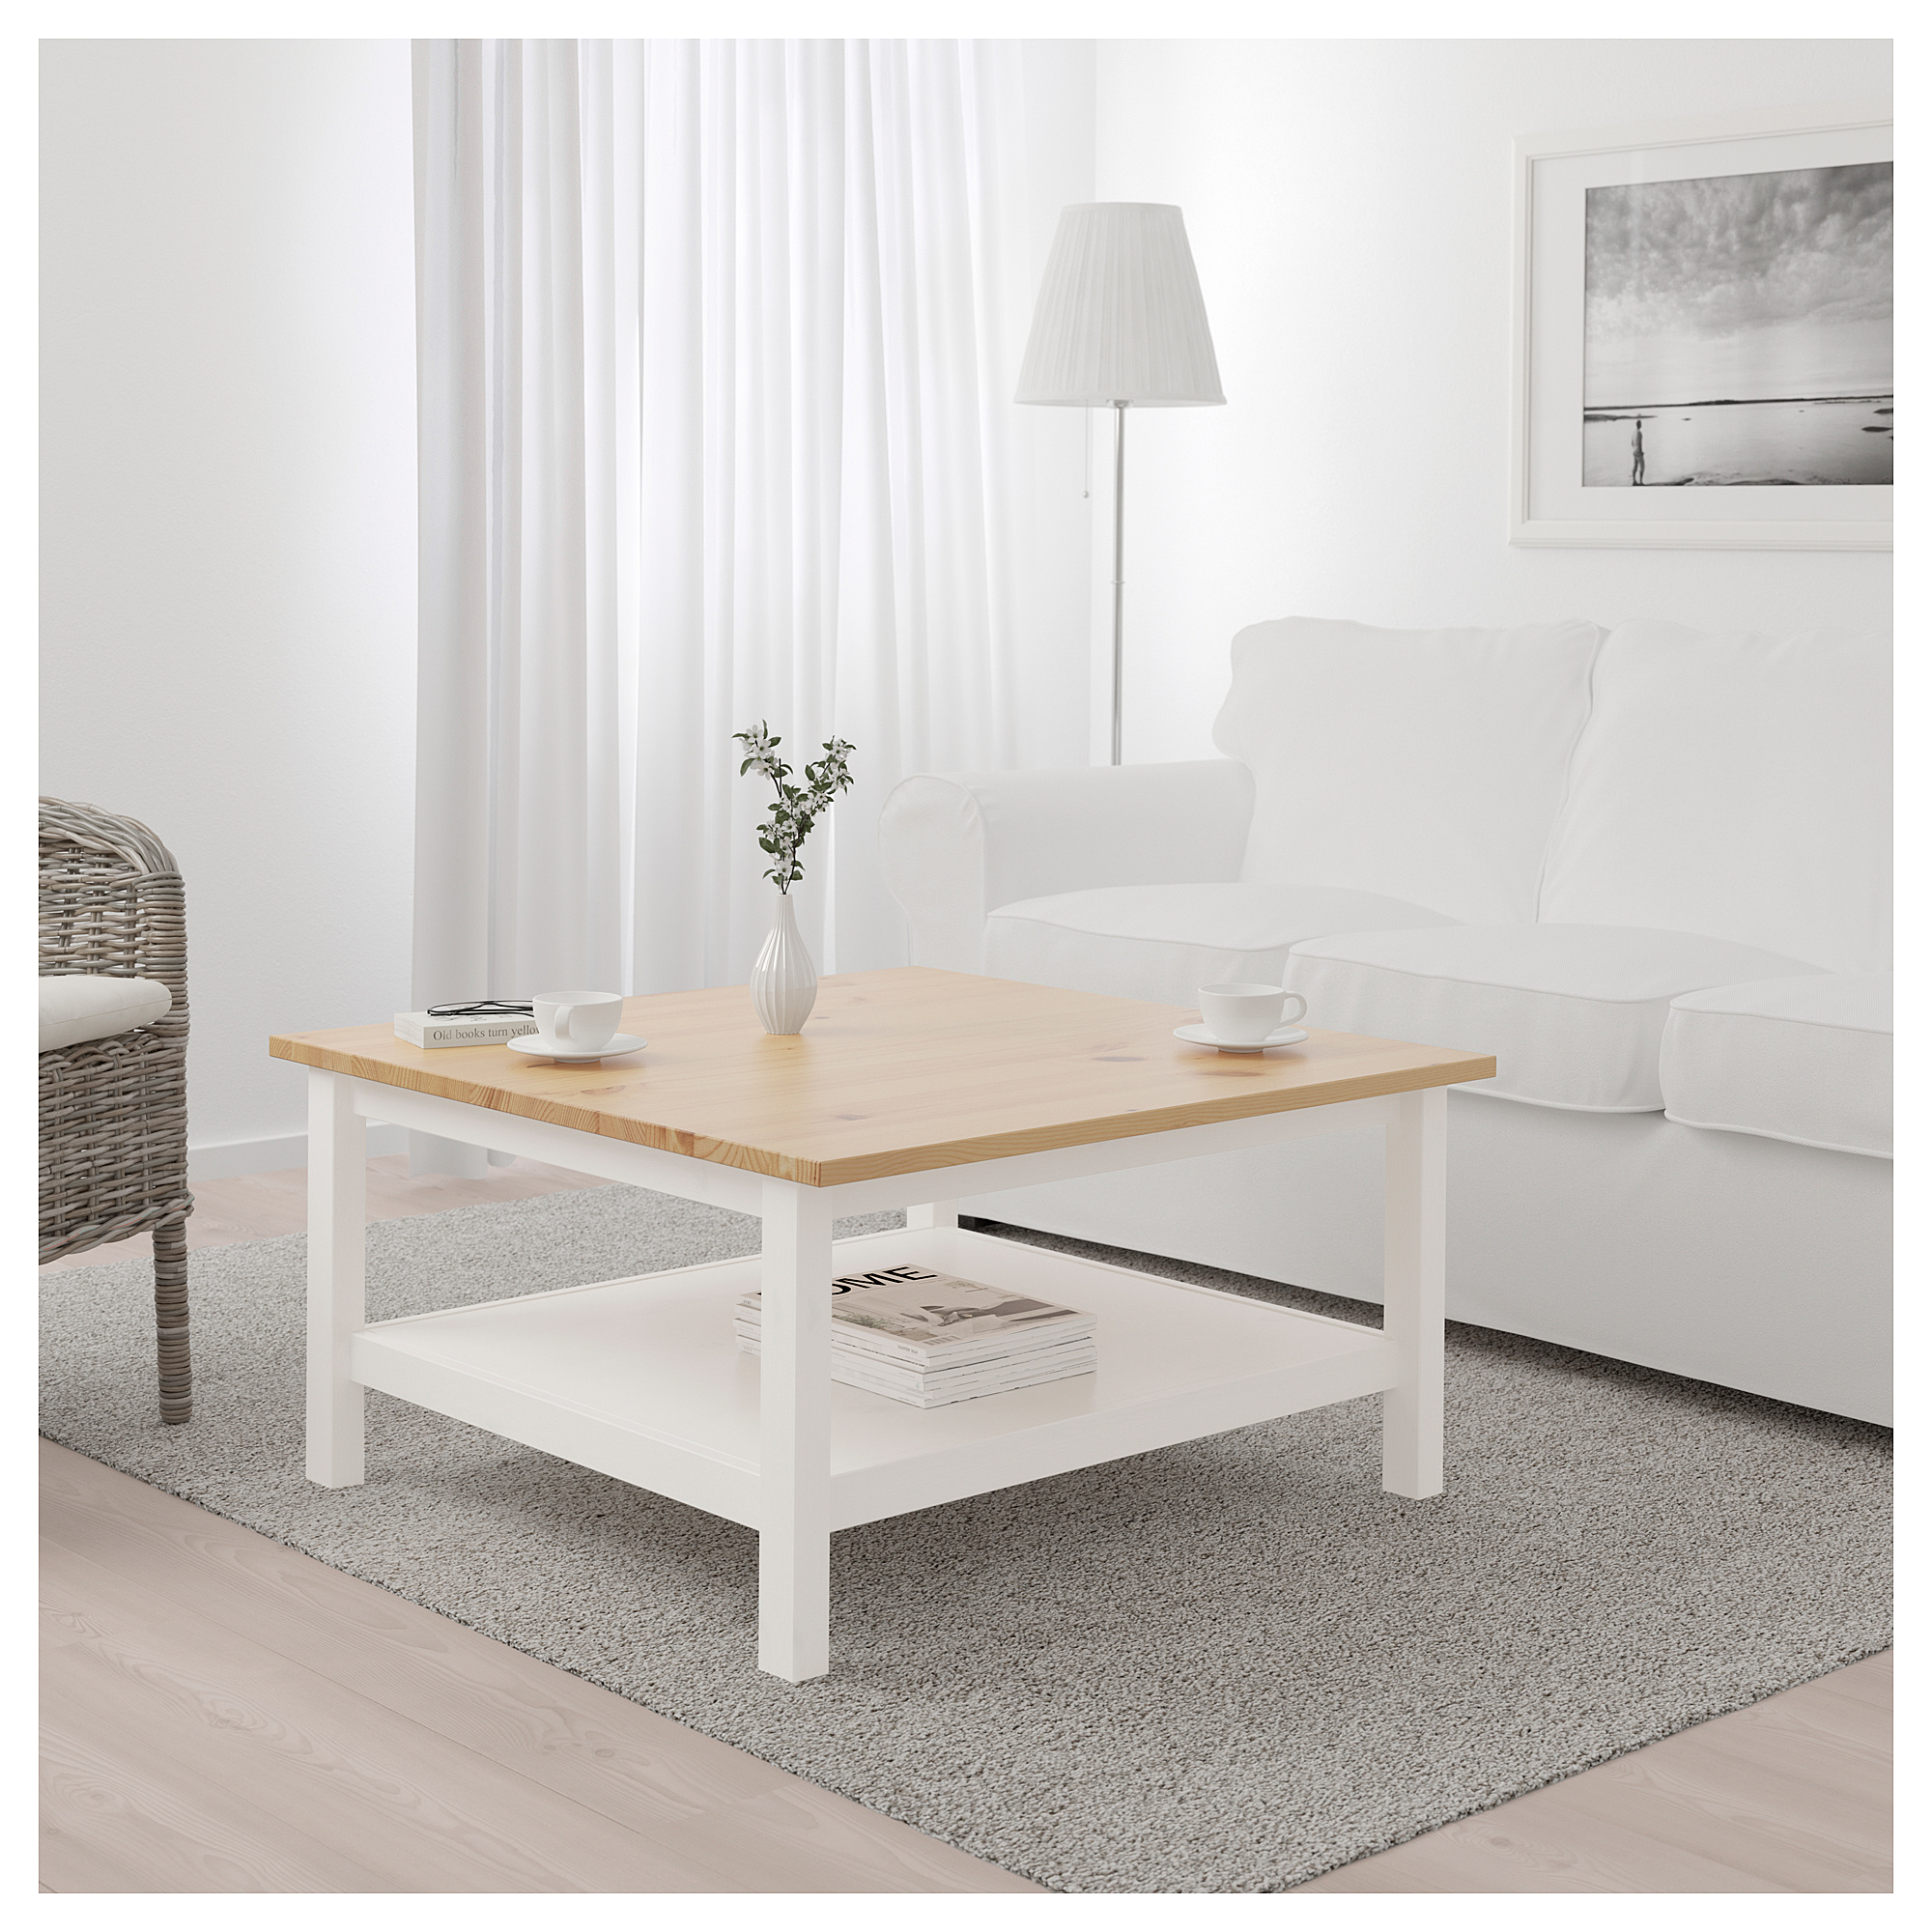 Ikea Hemnes Coffee Table White Stain Light Brown Table